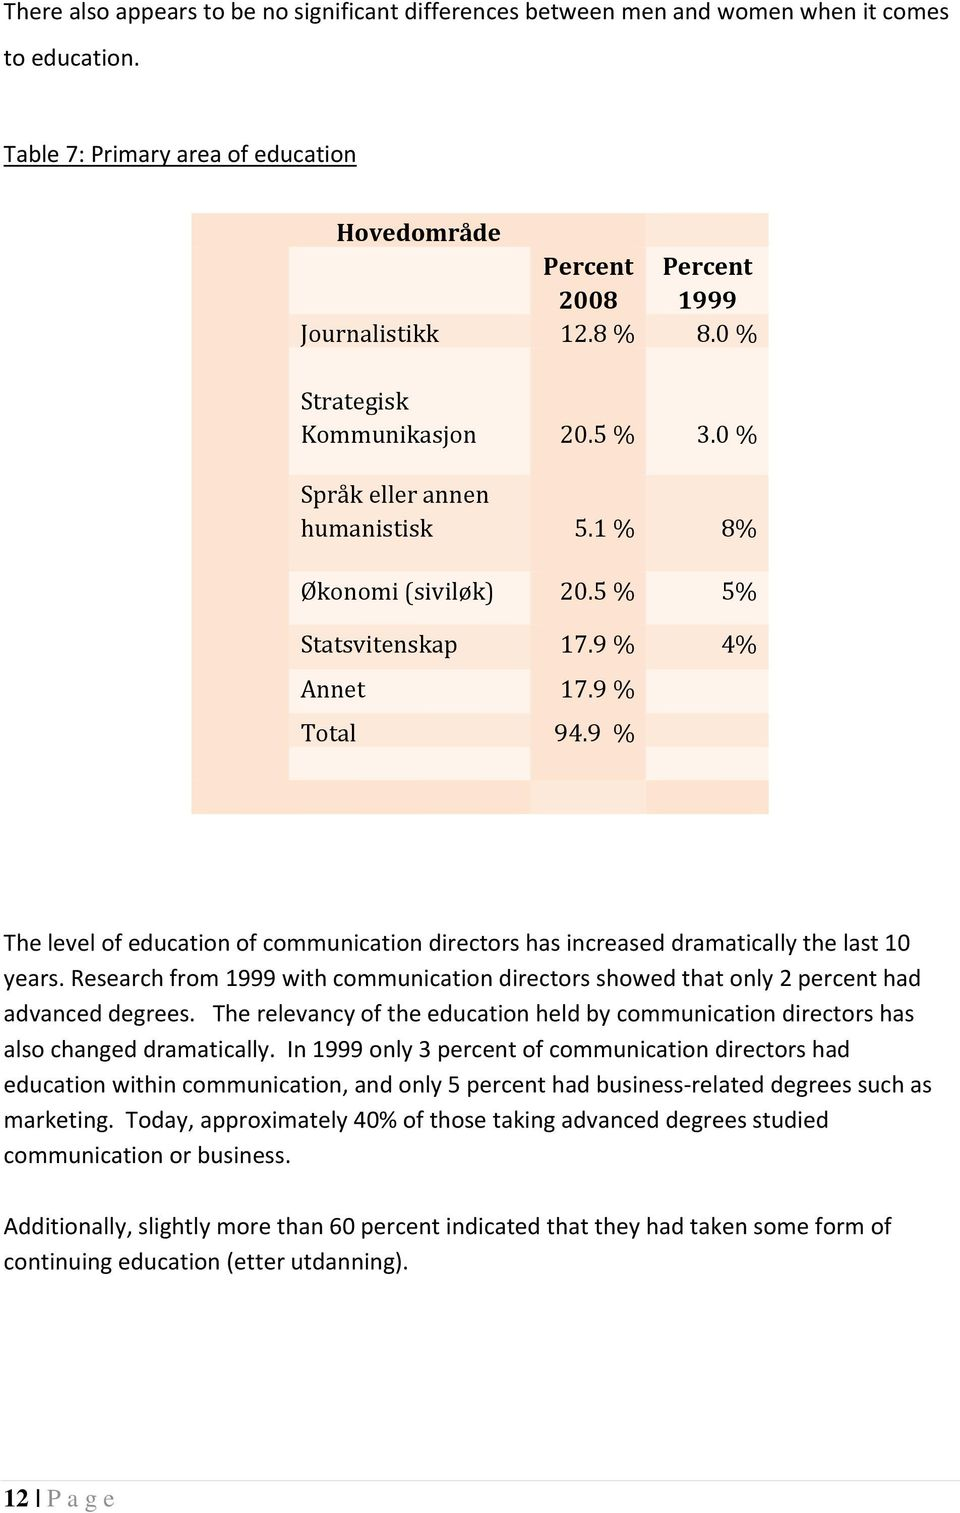 9 % The level of education of communication directors has increased dramatically the last 10 years. Research from 1999 with communication directors showed that only 2 percent had advanced degrees.